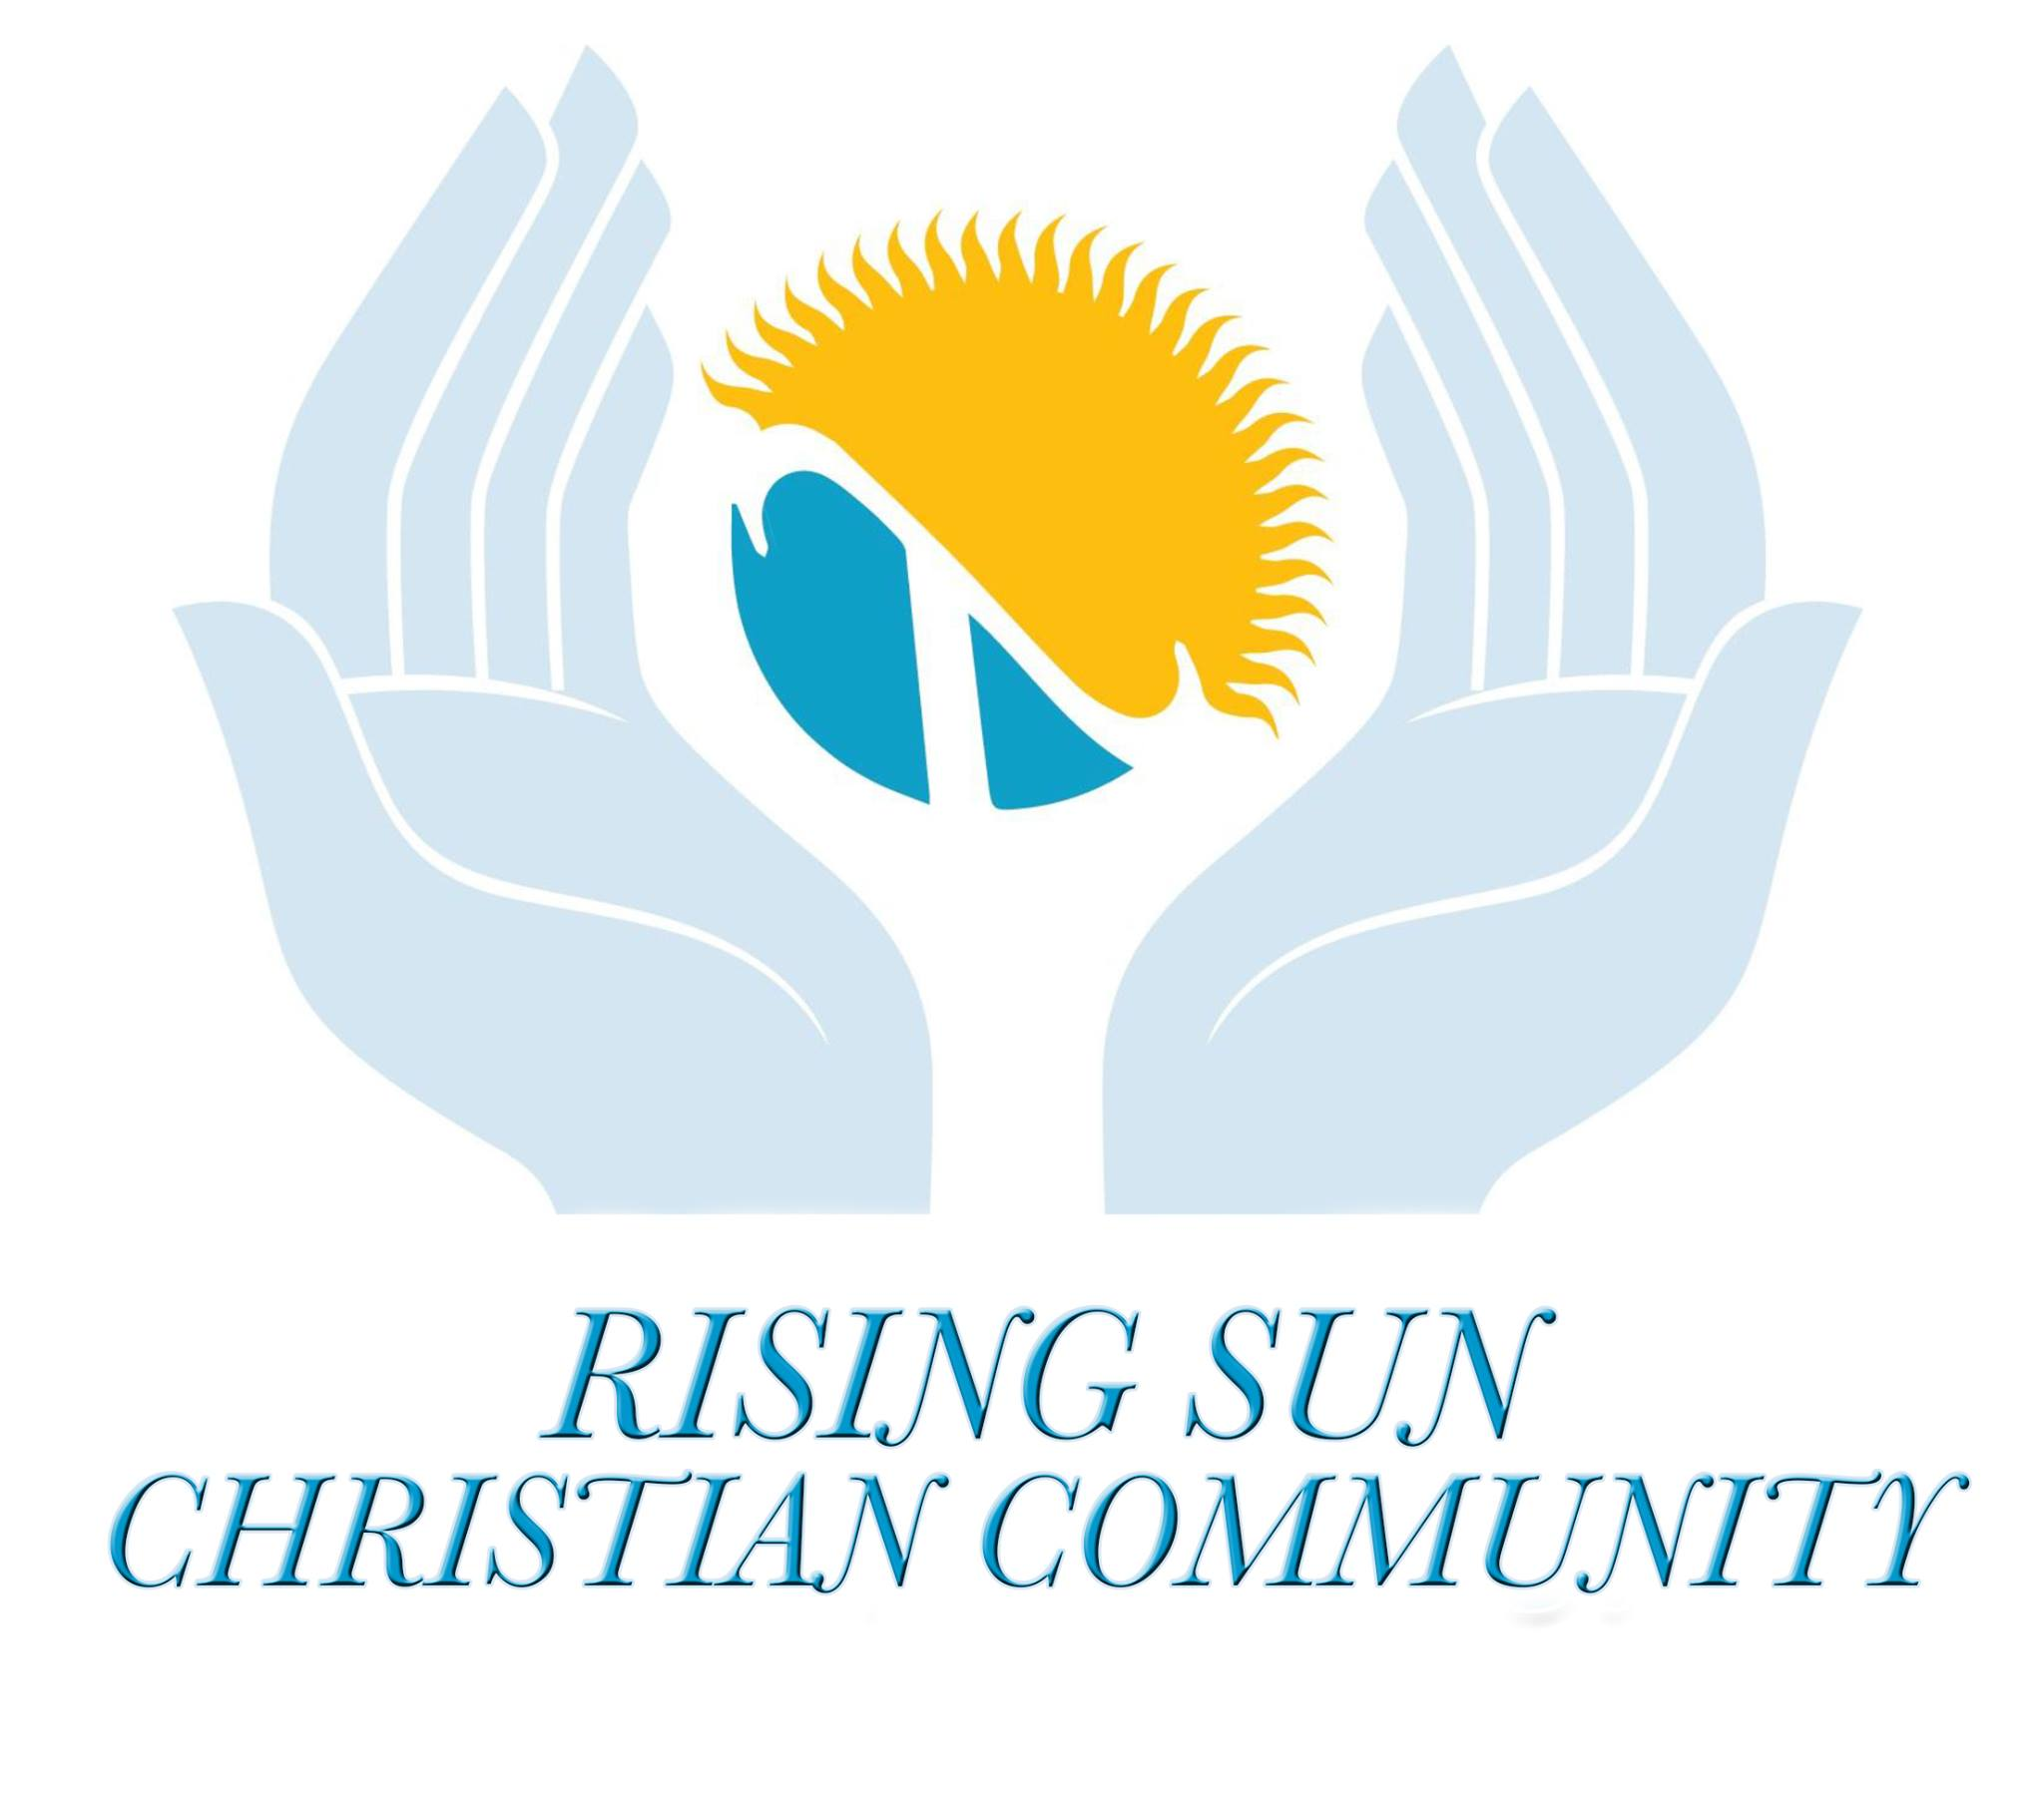 Rising Sun Christian Community